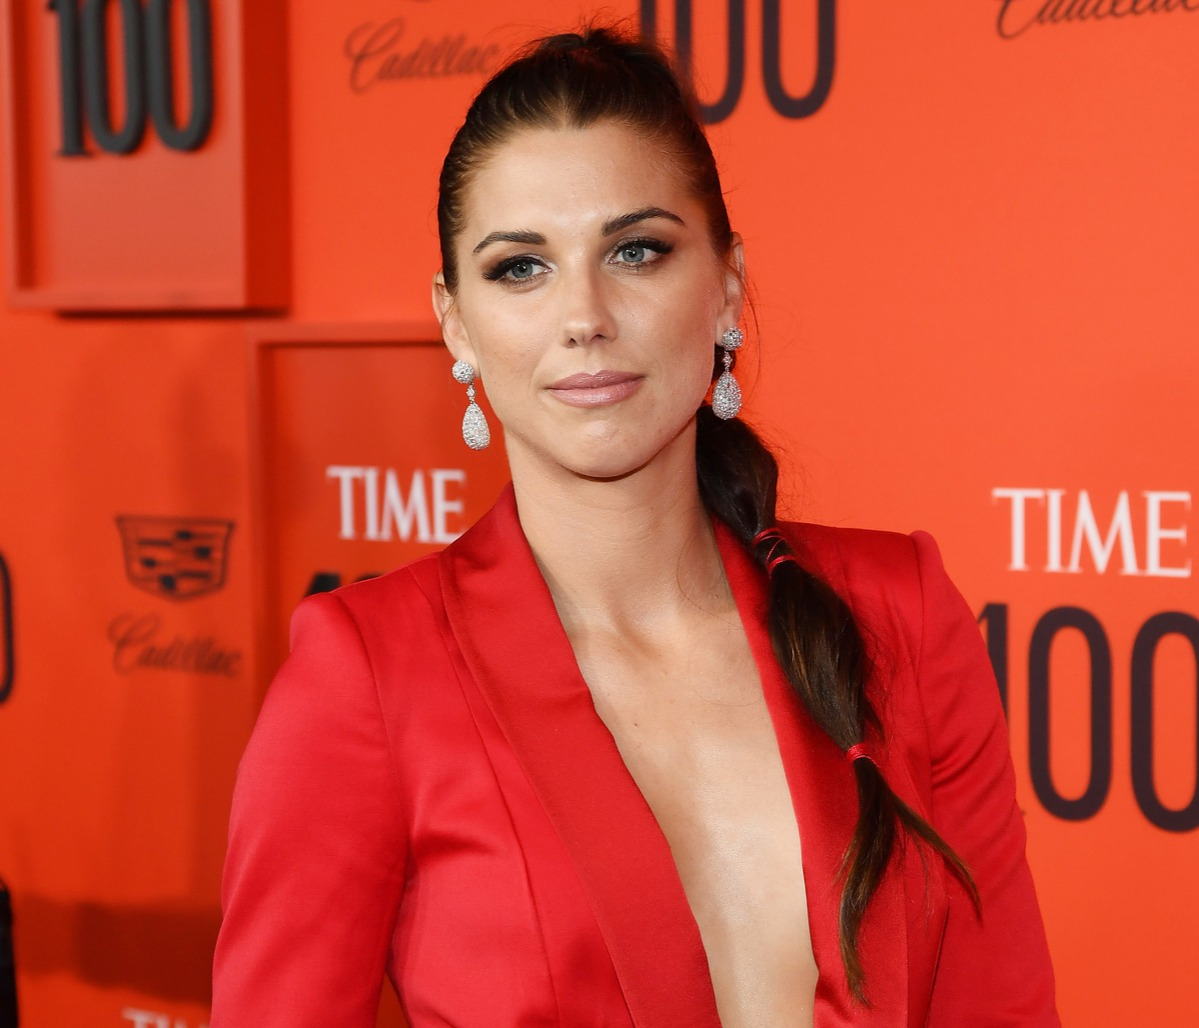 Alex Morgan attends the TIME 100 Gala Red Carpet